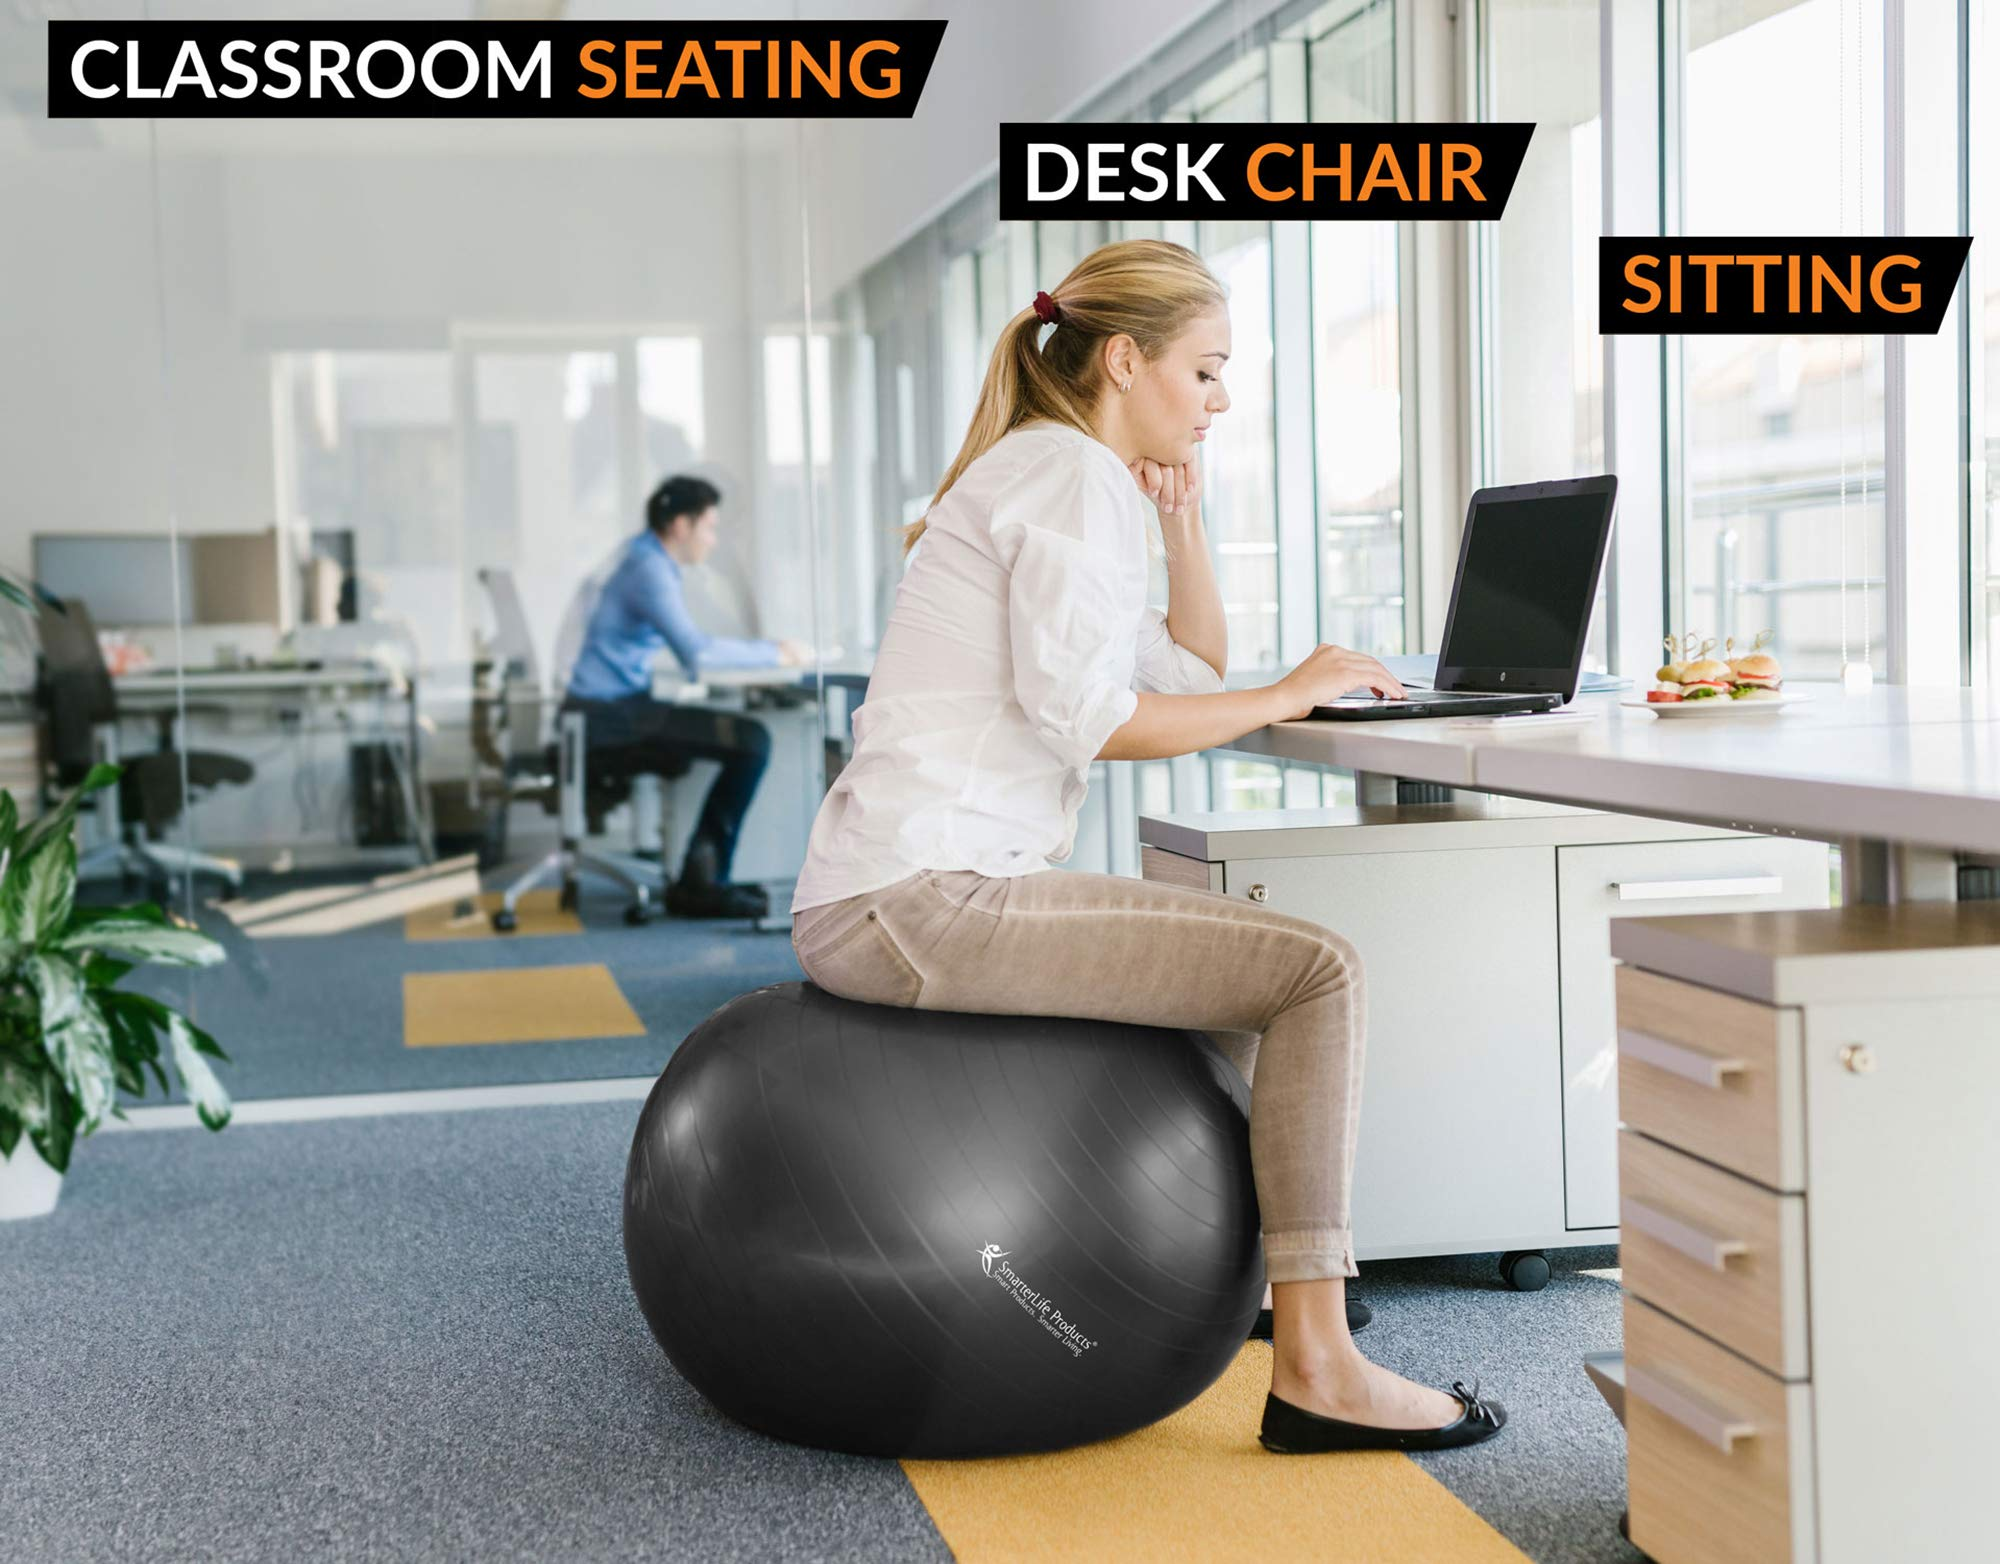 Exercise Ball for Yoga, Balance, Stability from SmarterLife - Fitness, Pilates, Birthing, Therapy, Office Ball Chair, Classroom Flexible Seating - Anti Burst, Non Slip + Workout Guide (Black, 65cm) by SmarterLife Products (Image #5)